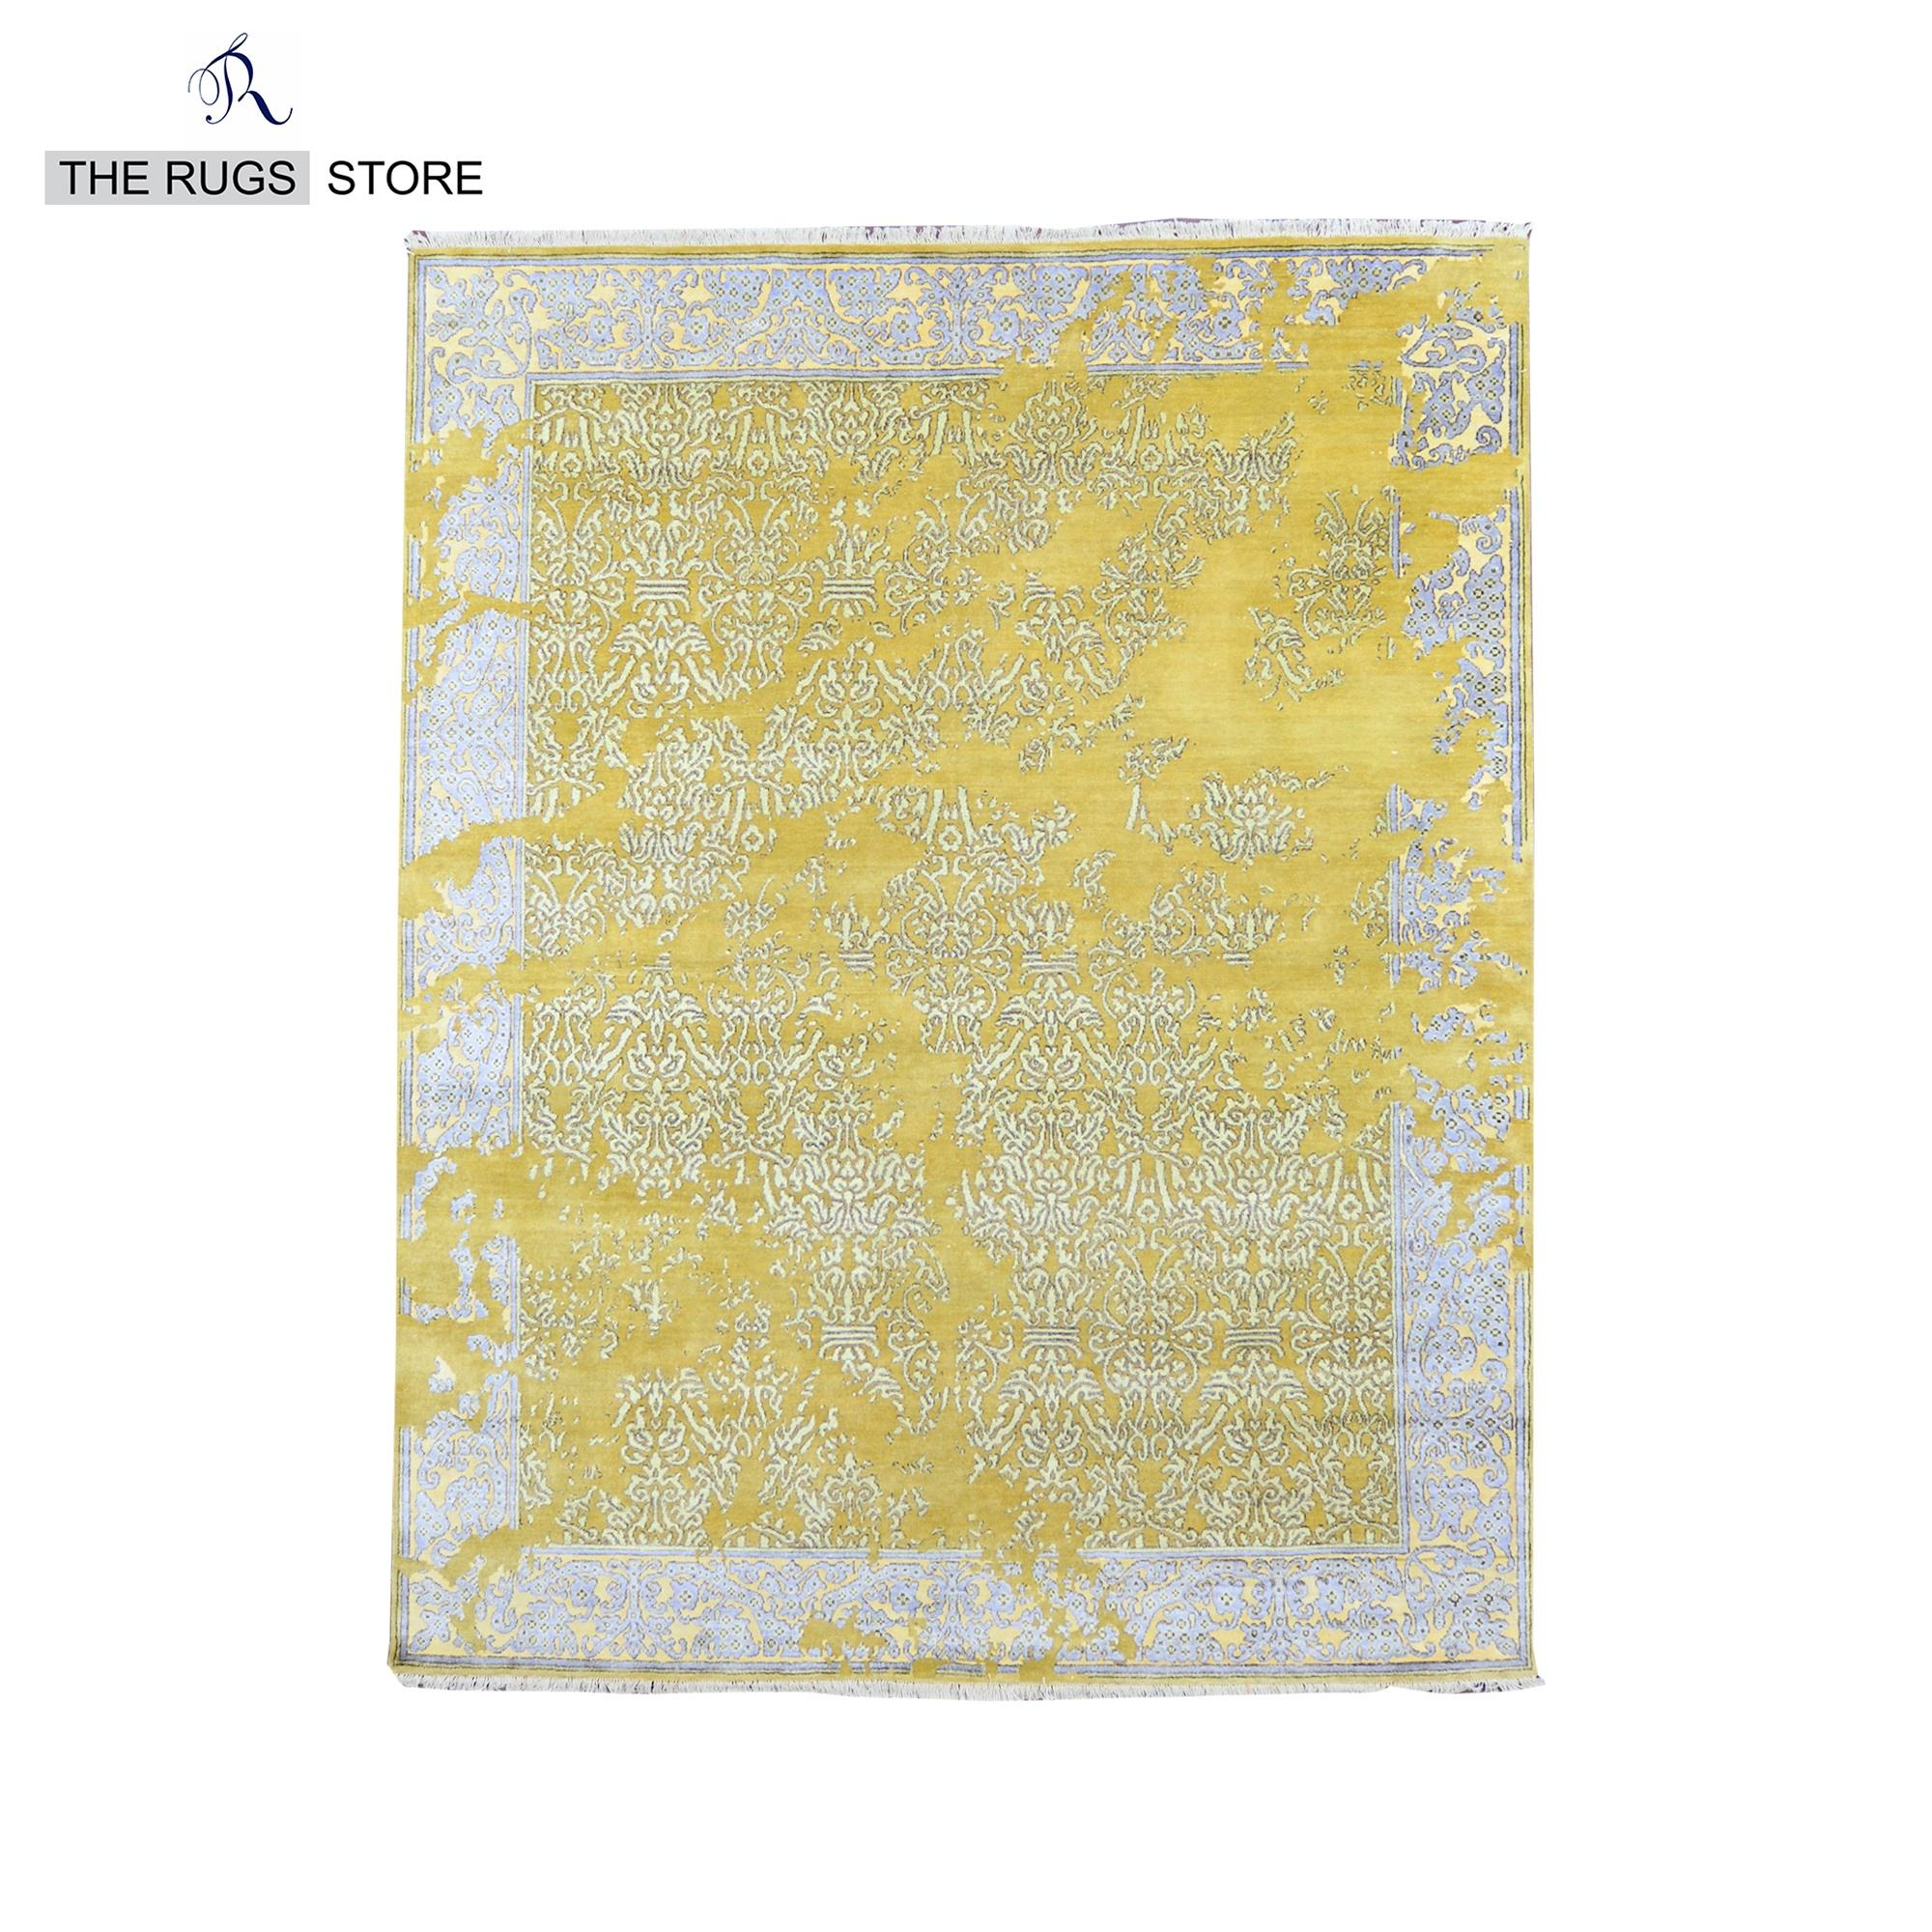 Picture of: Hand Knotted Jan Kath Erased Design Yellow M 138 8×10 Wool And Viscose Modern Area Rugs Buy Viscose Rug Hand Woven India Wool Rug Modern Area Rugs Product On Alibaba Com